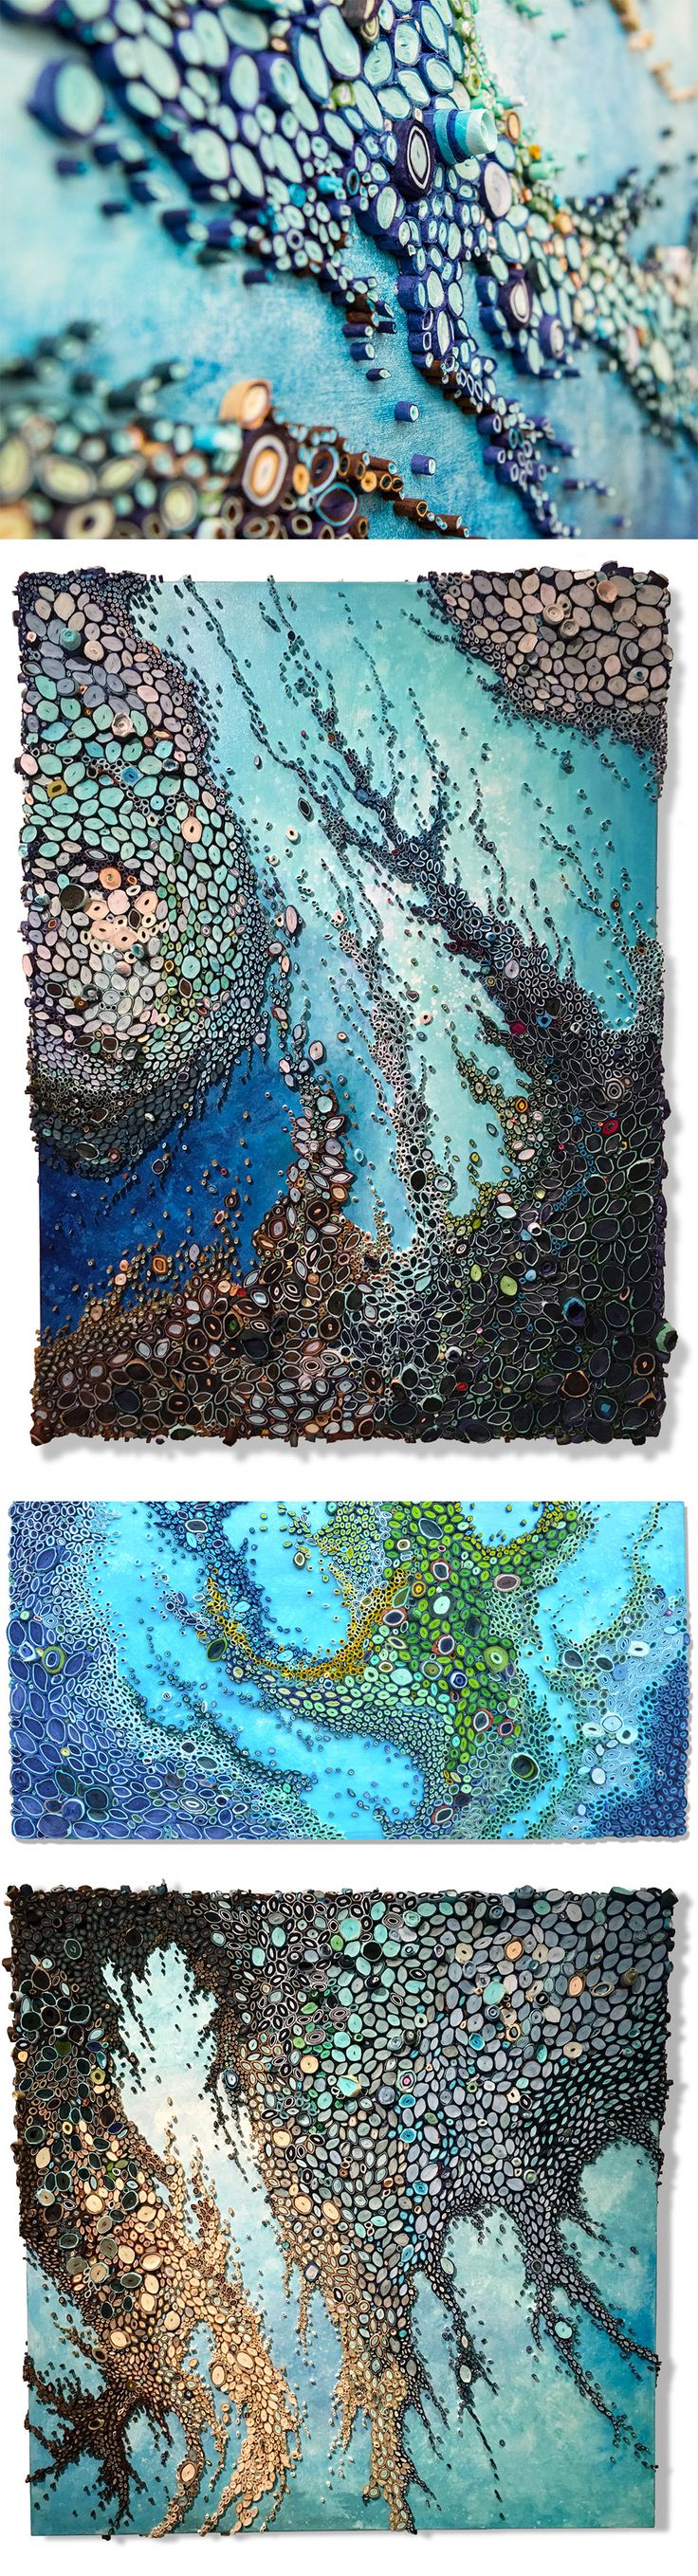 New Ocean Reefs Comprised of Rolled Paper by Amy Genser